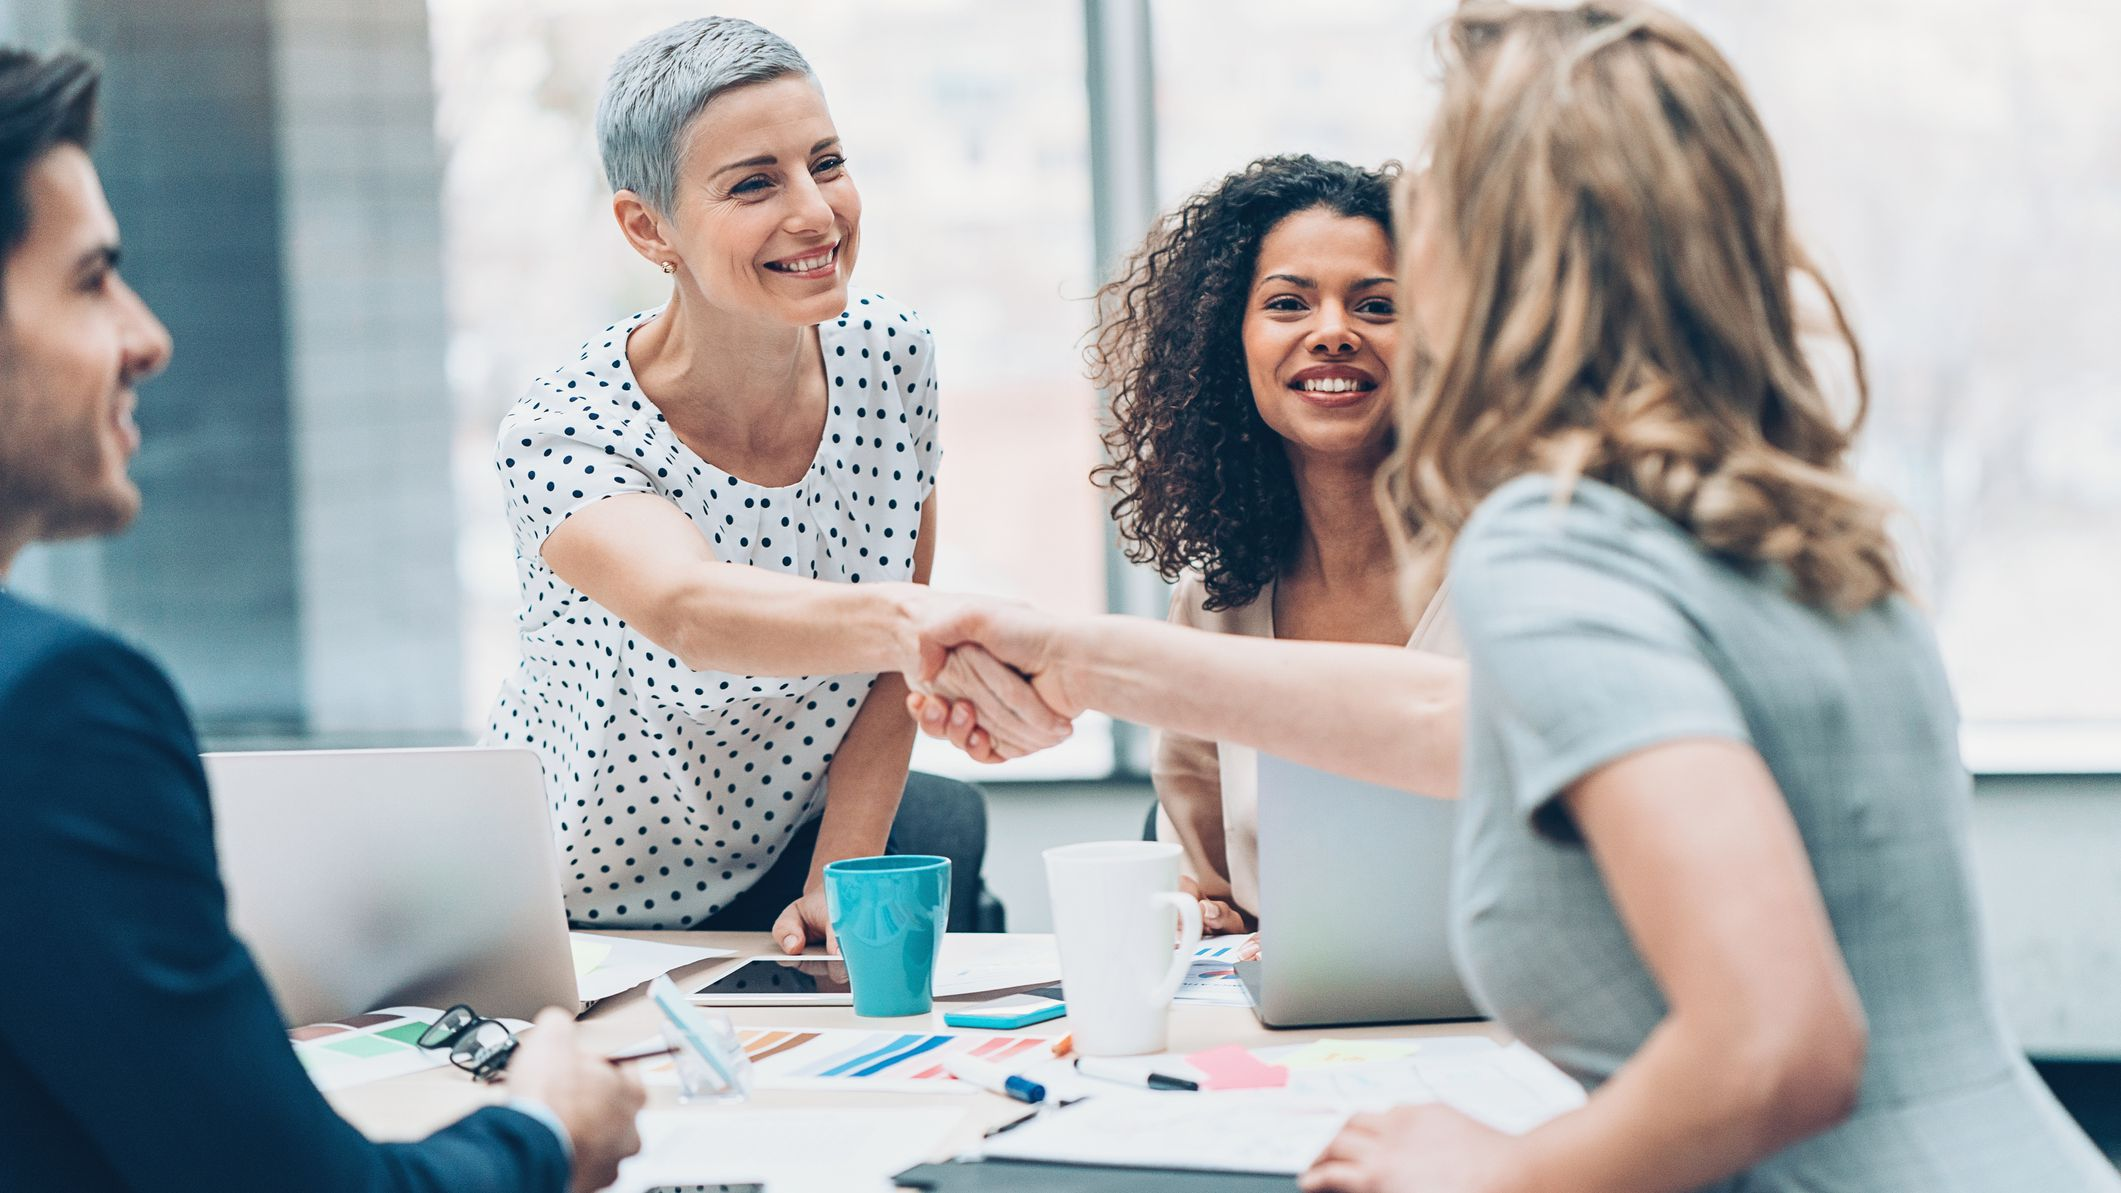 Steps in Mediating Workplace Conflict Toward Resolution